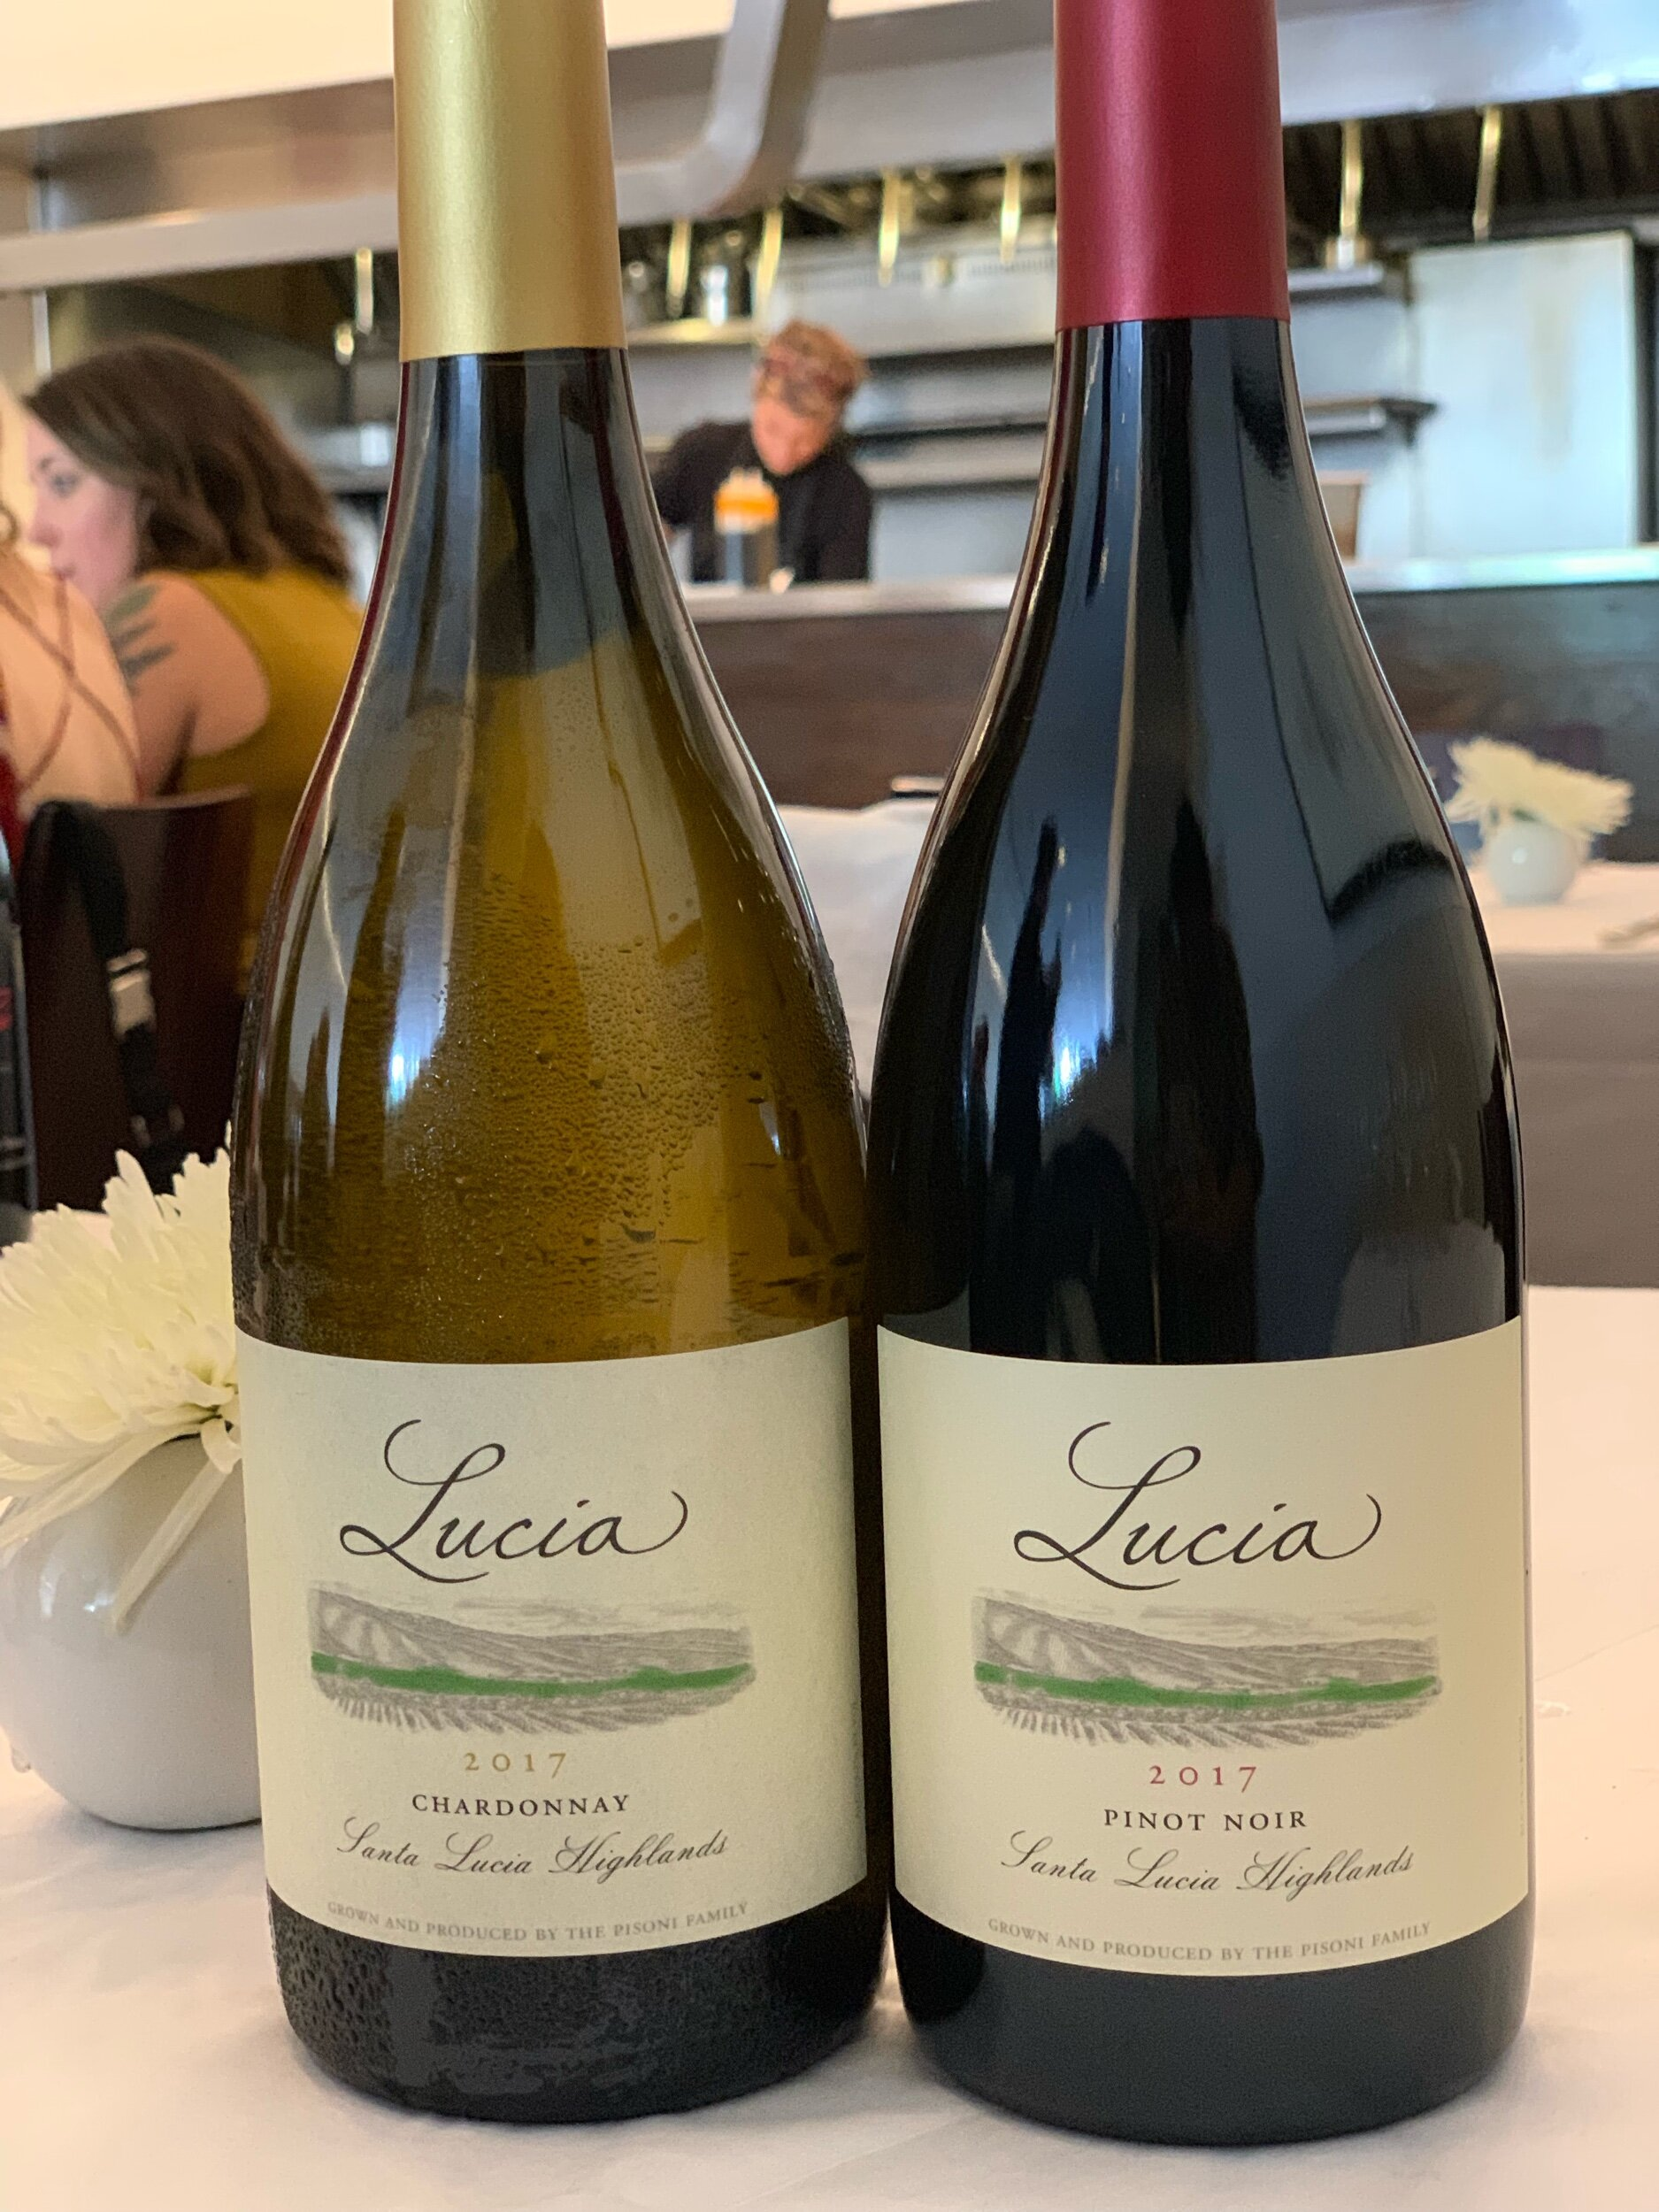 The Lucia Wines are made by the Pisoni Family.